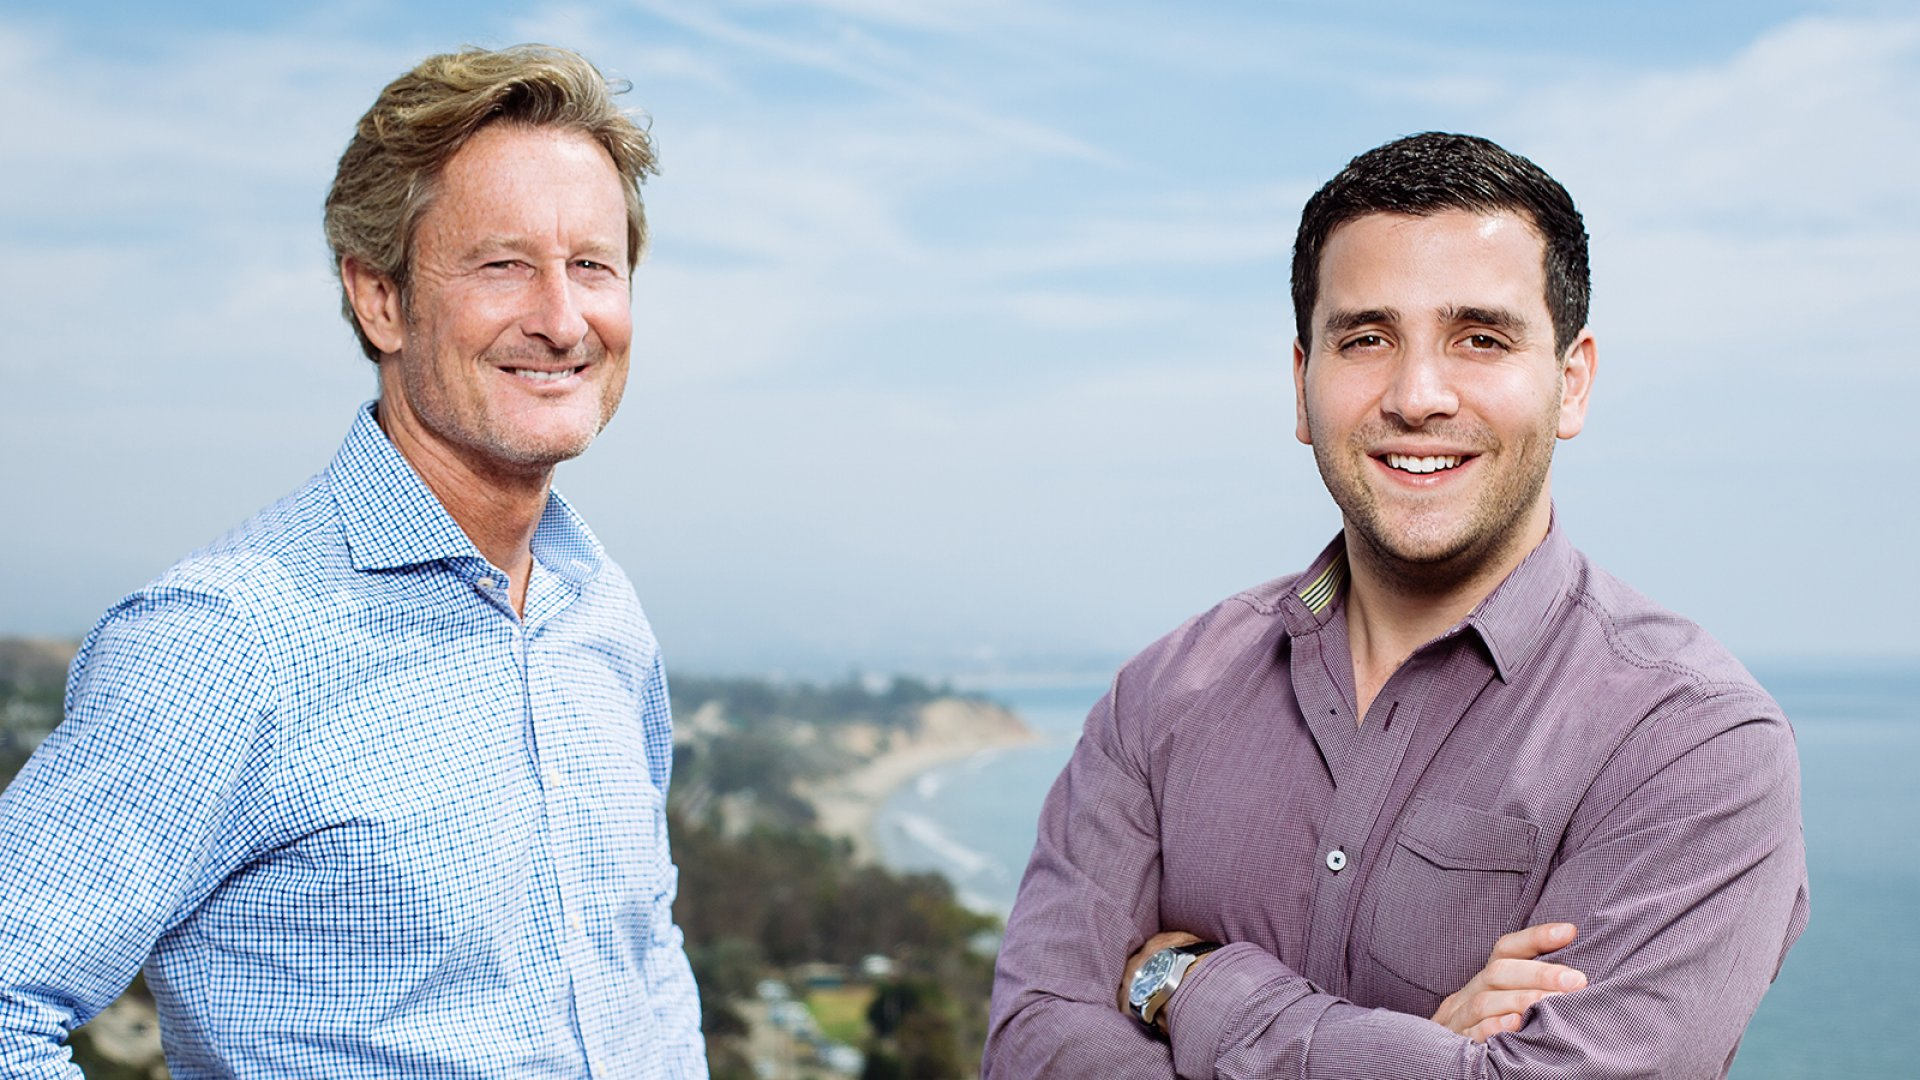 Graphiq, an artificial intelligence startup that specializes in creating interactive infographics, on Tuesday announced a partnership to distribute its charts through the Associated Press. Above, Graphiq CEO and founder Kevin O'Connor (left) and vice president Alex Rosenberg.